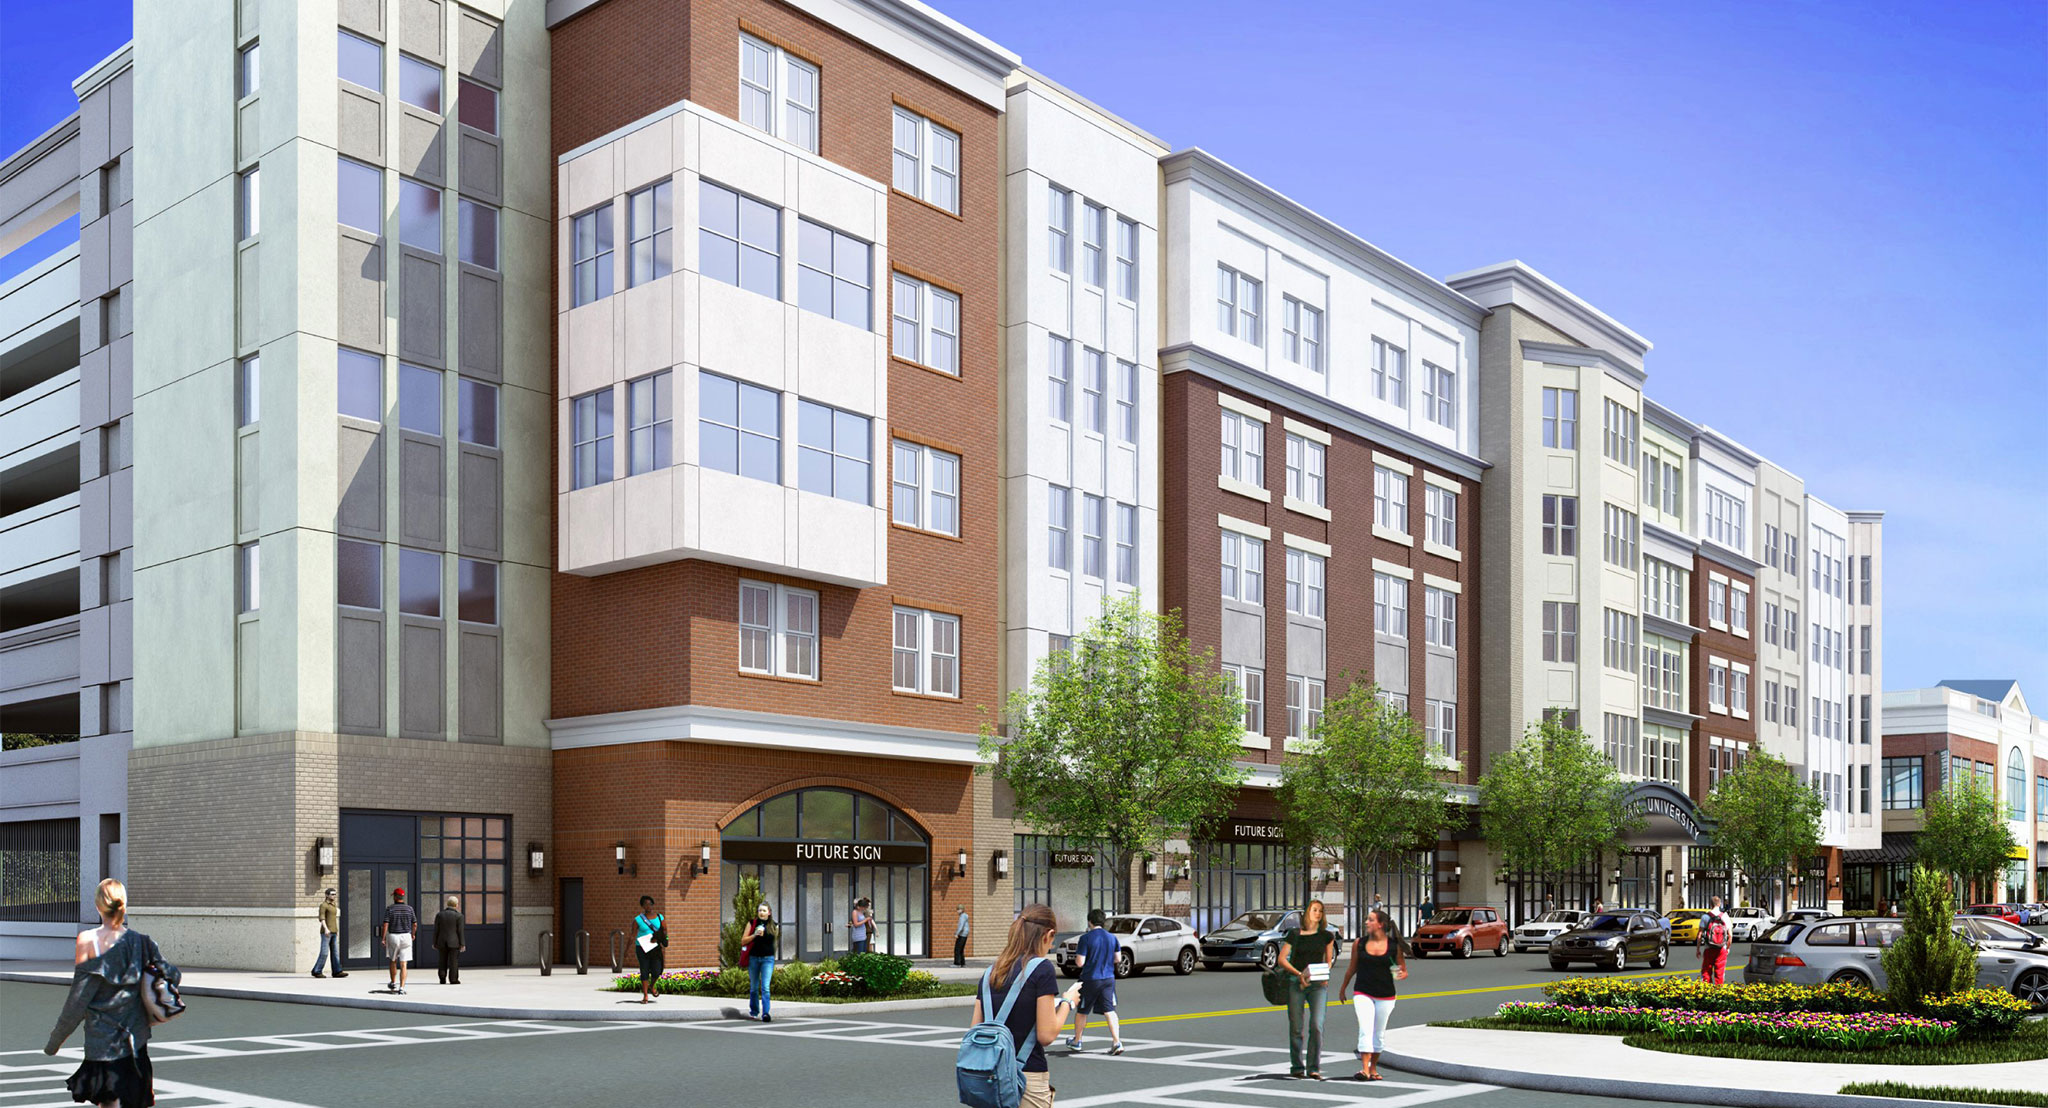 Corporate Real Estate Development : Nexus properties commercial real estate solutions for